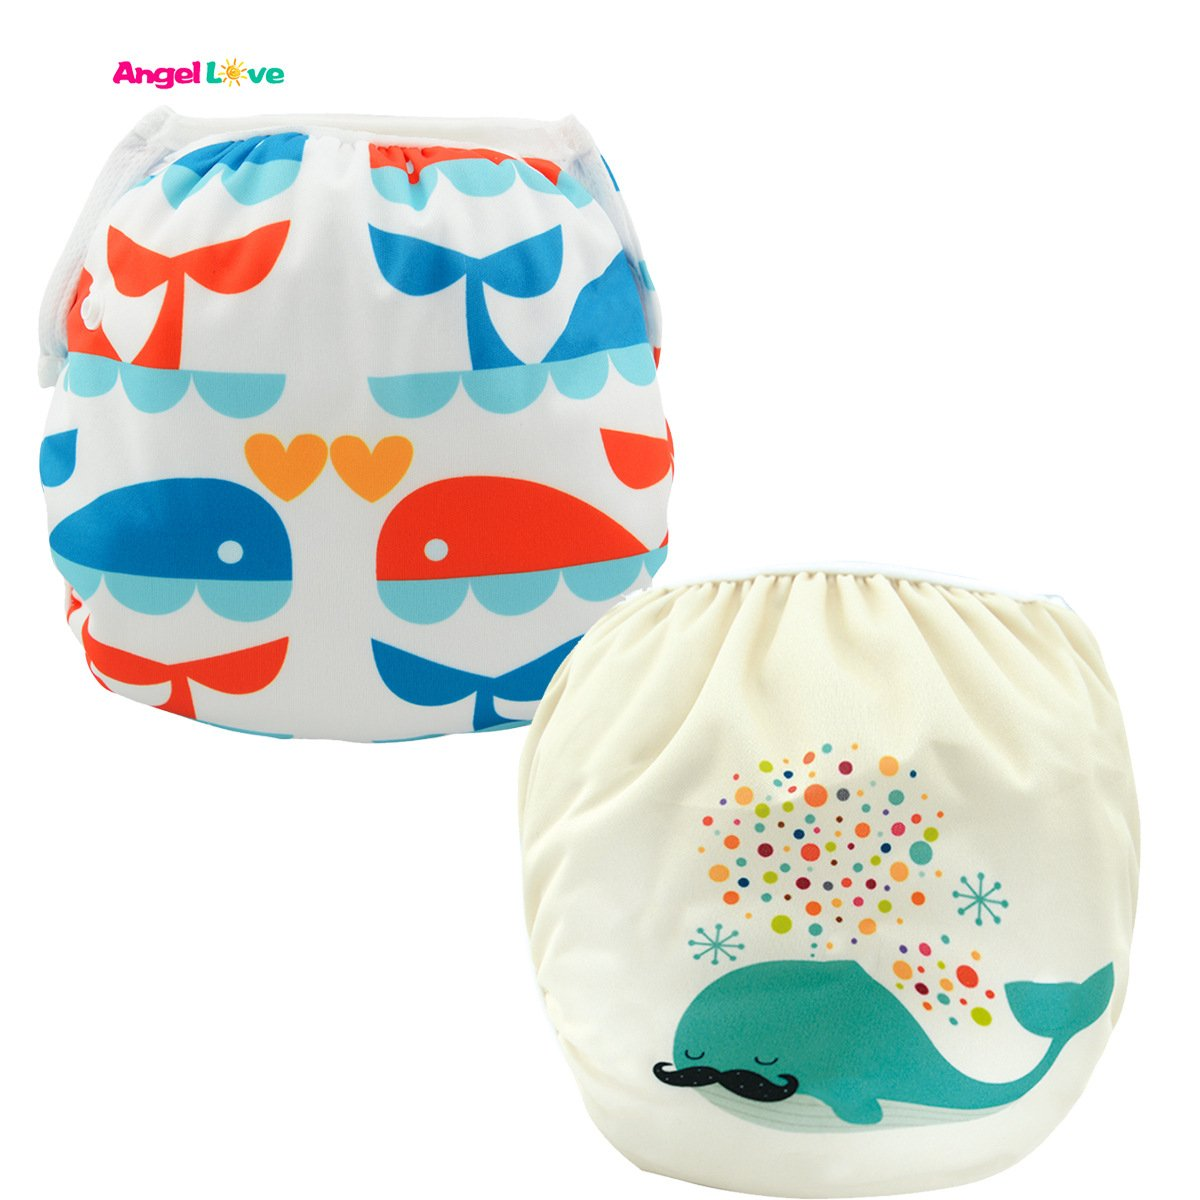 Baby Swim diapers, ANGEL LOVE Baby 2PCS Pack Cloth Swim diaper, Reusable Washable and Adjustable for Swimming, Outdoor Activities and Daily Use, Fit Babies 0-2 Years,All in One Size (SWD0204)